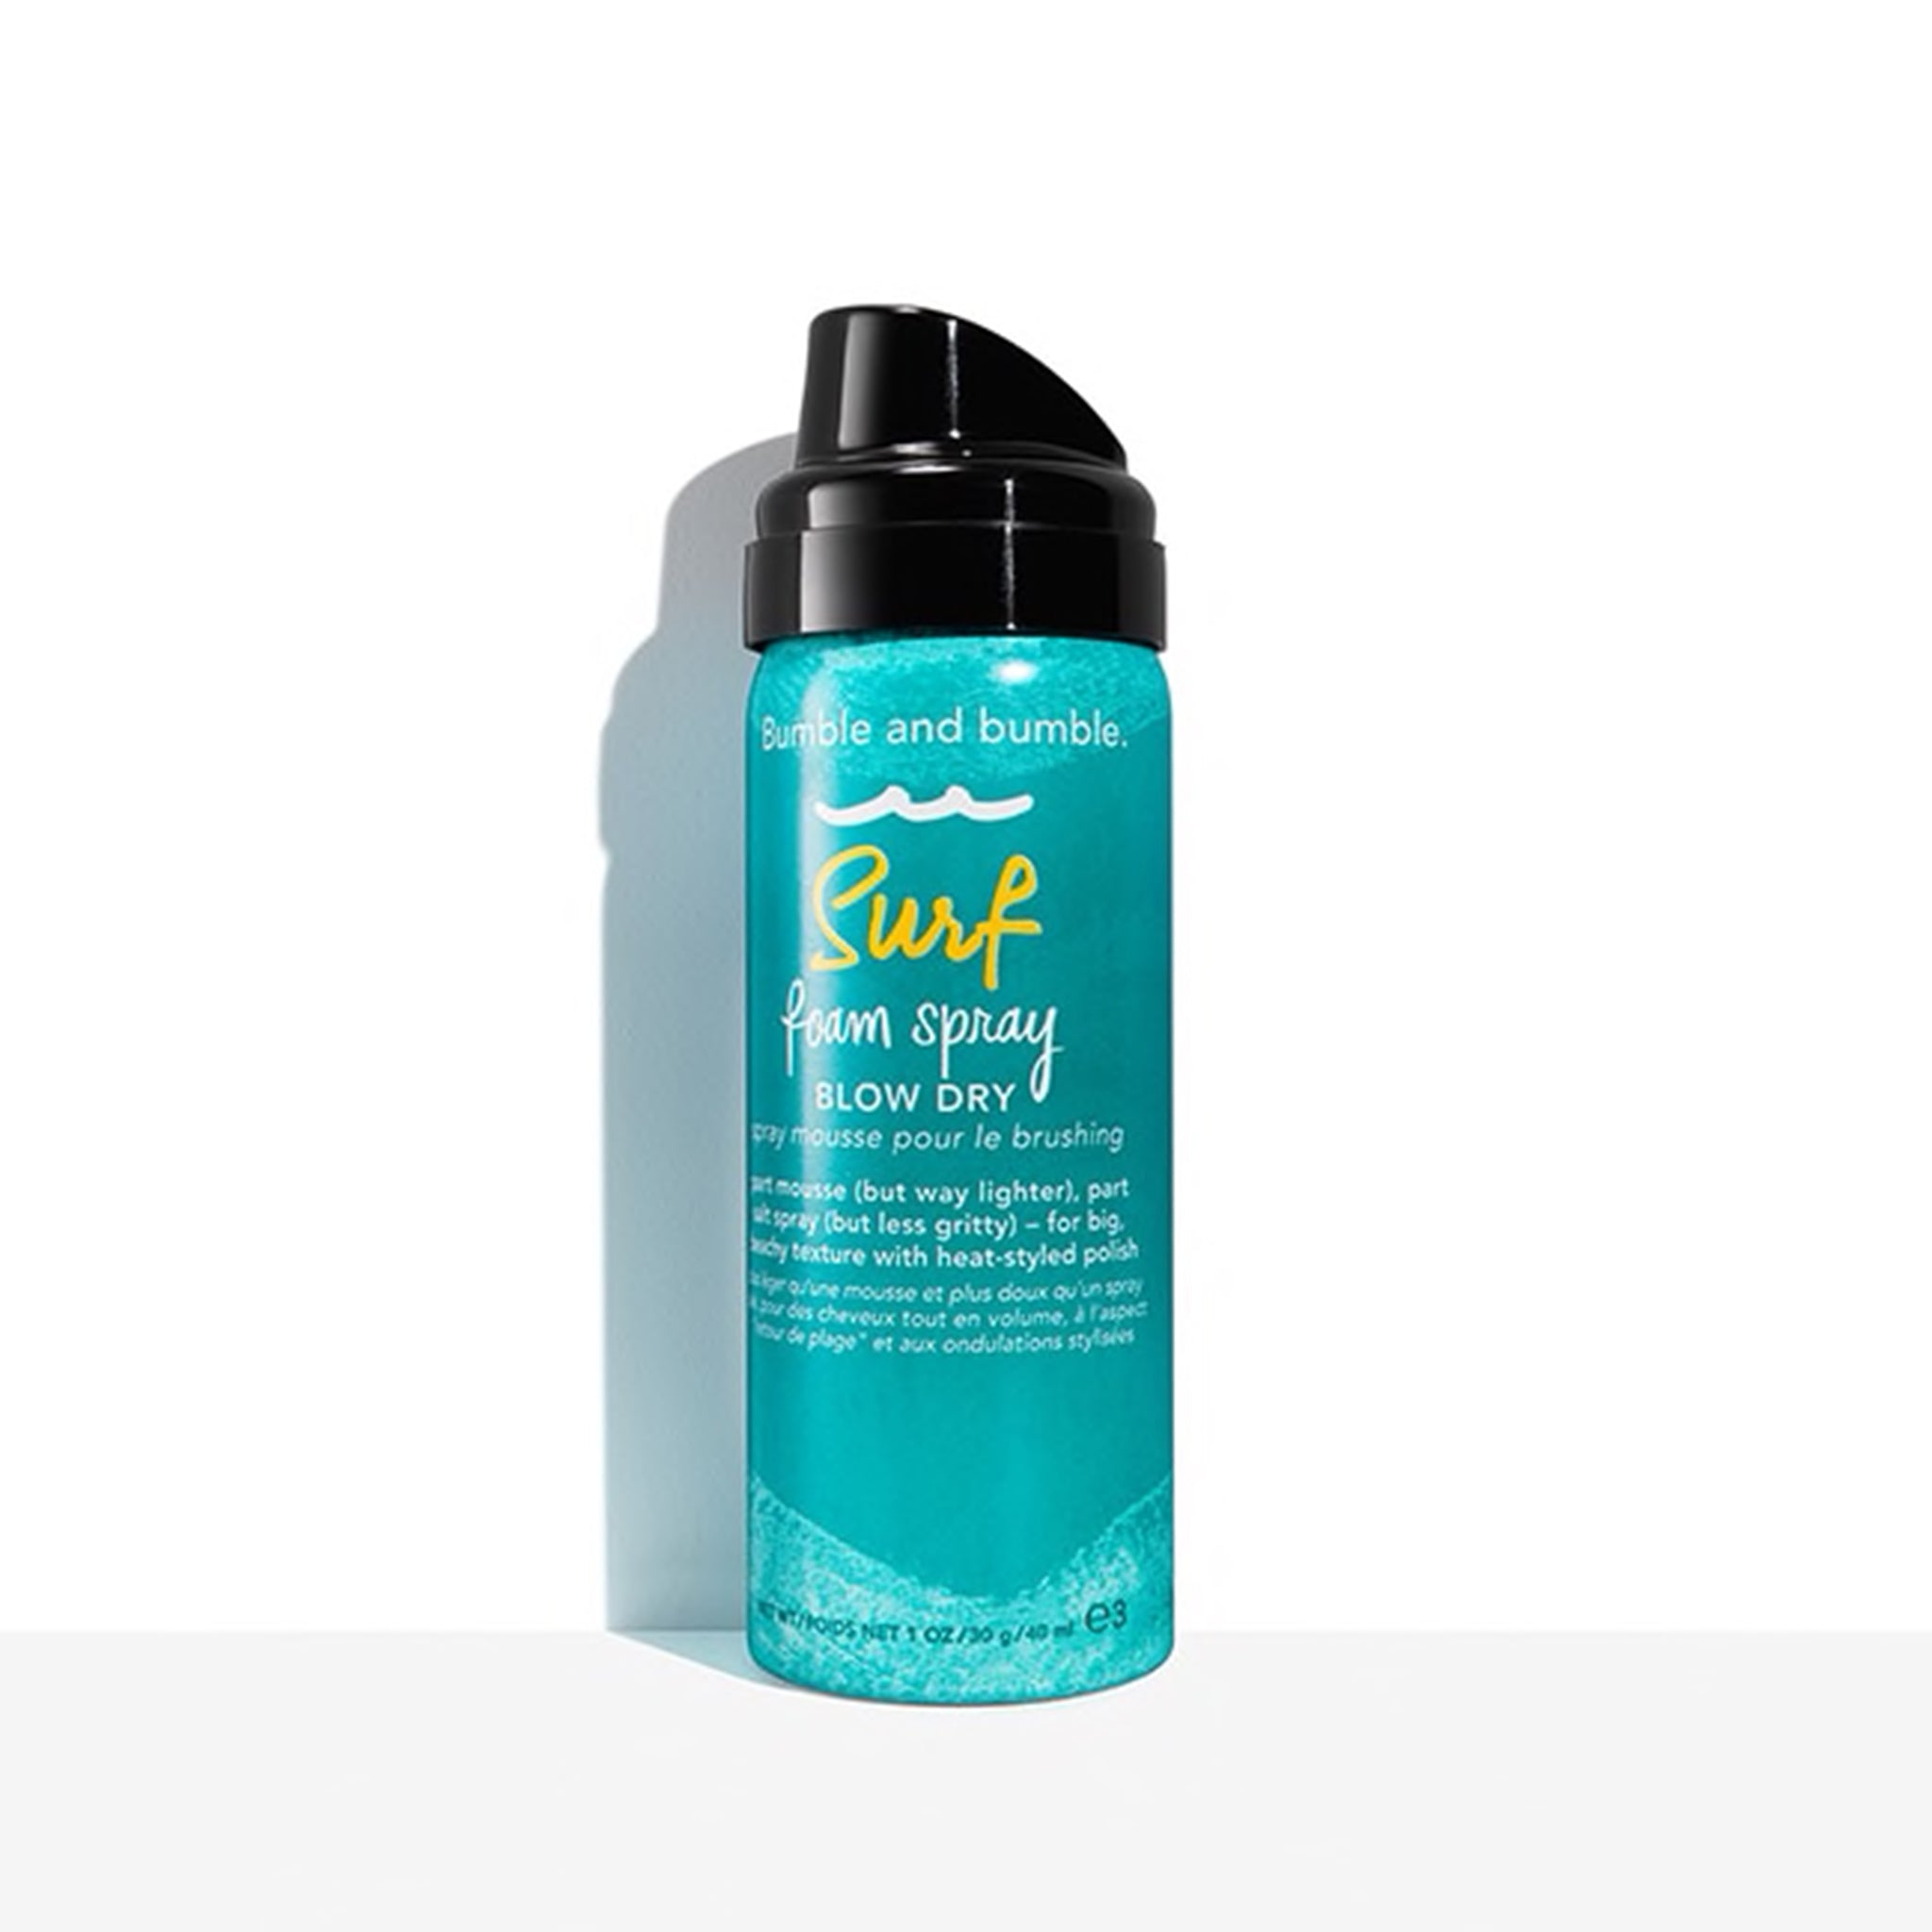 Surf Foam Spray Blow Dry